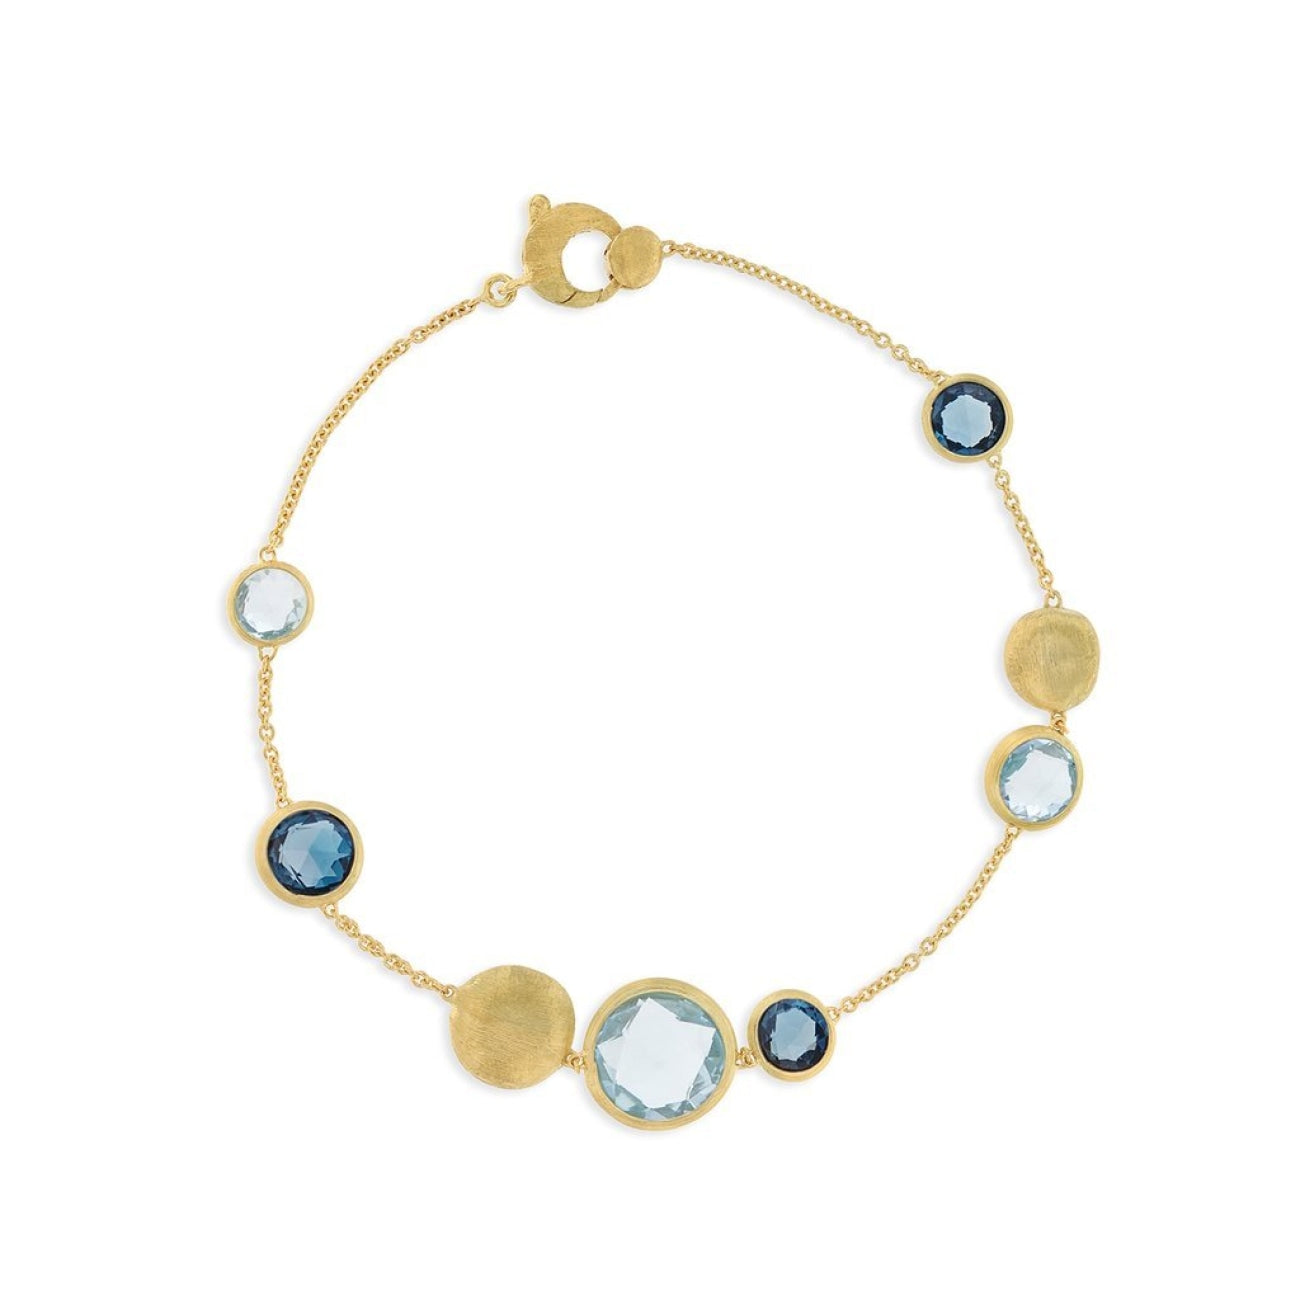 Marco Bicego Jewelry - 18K Yellow Gold and Mixed Blue Topaz Bracelet | Manfredi Jewels